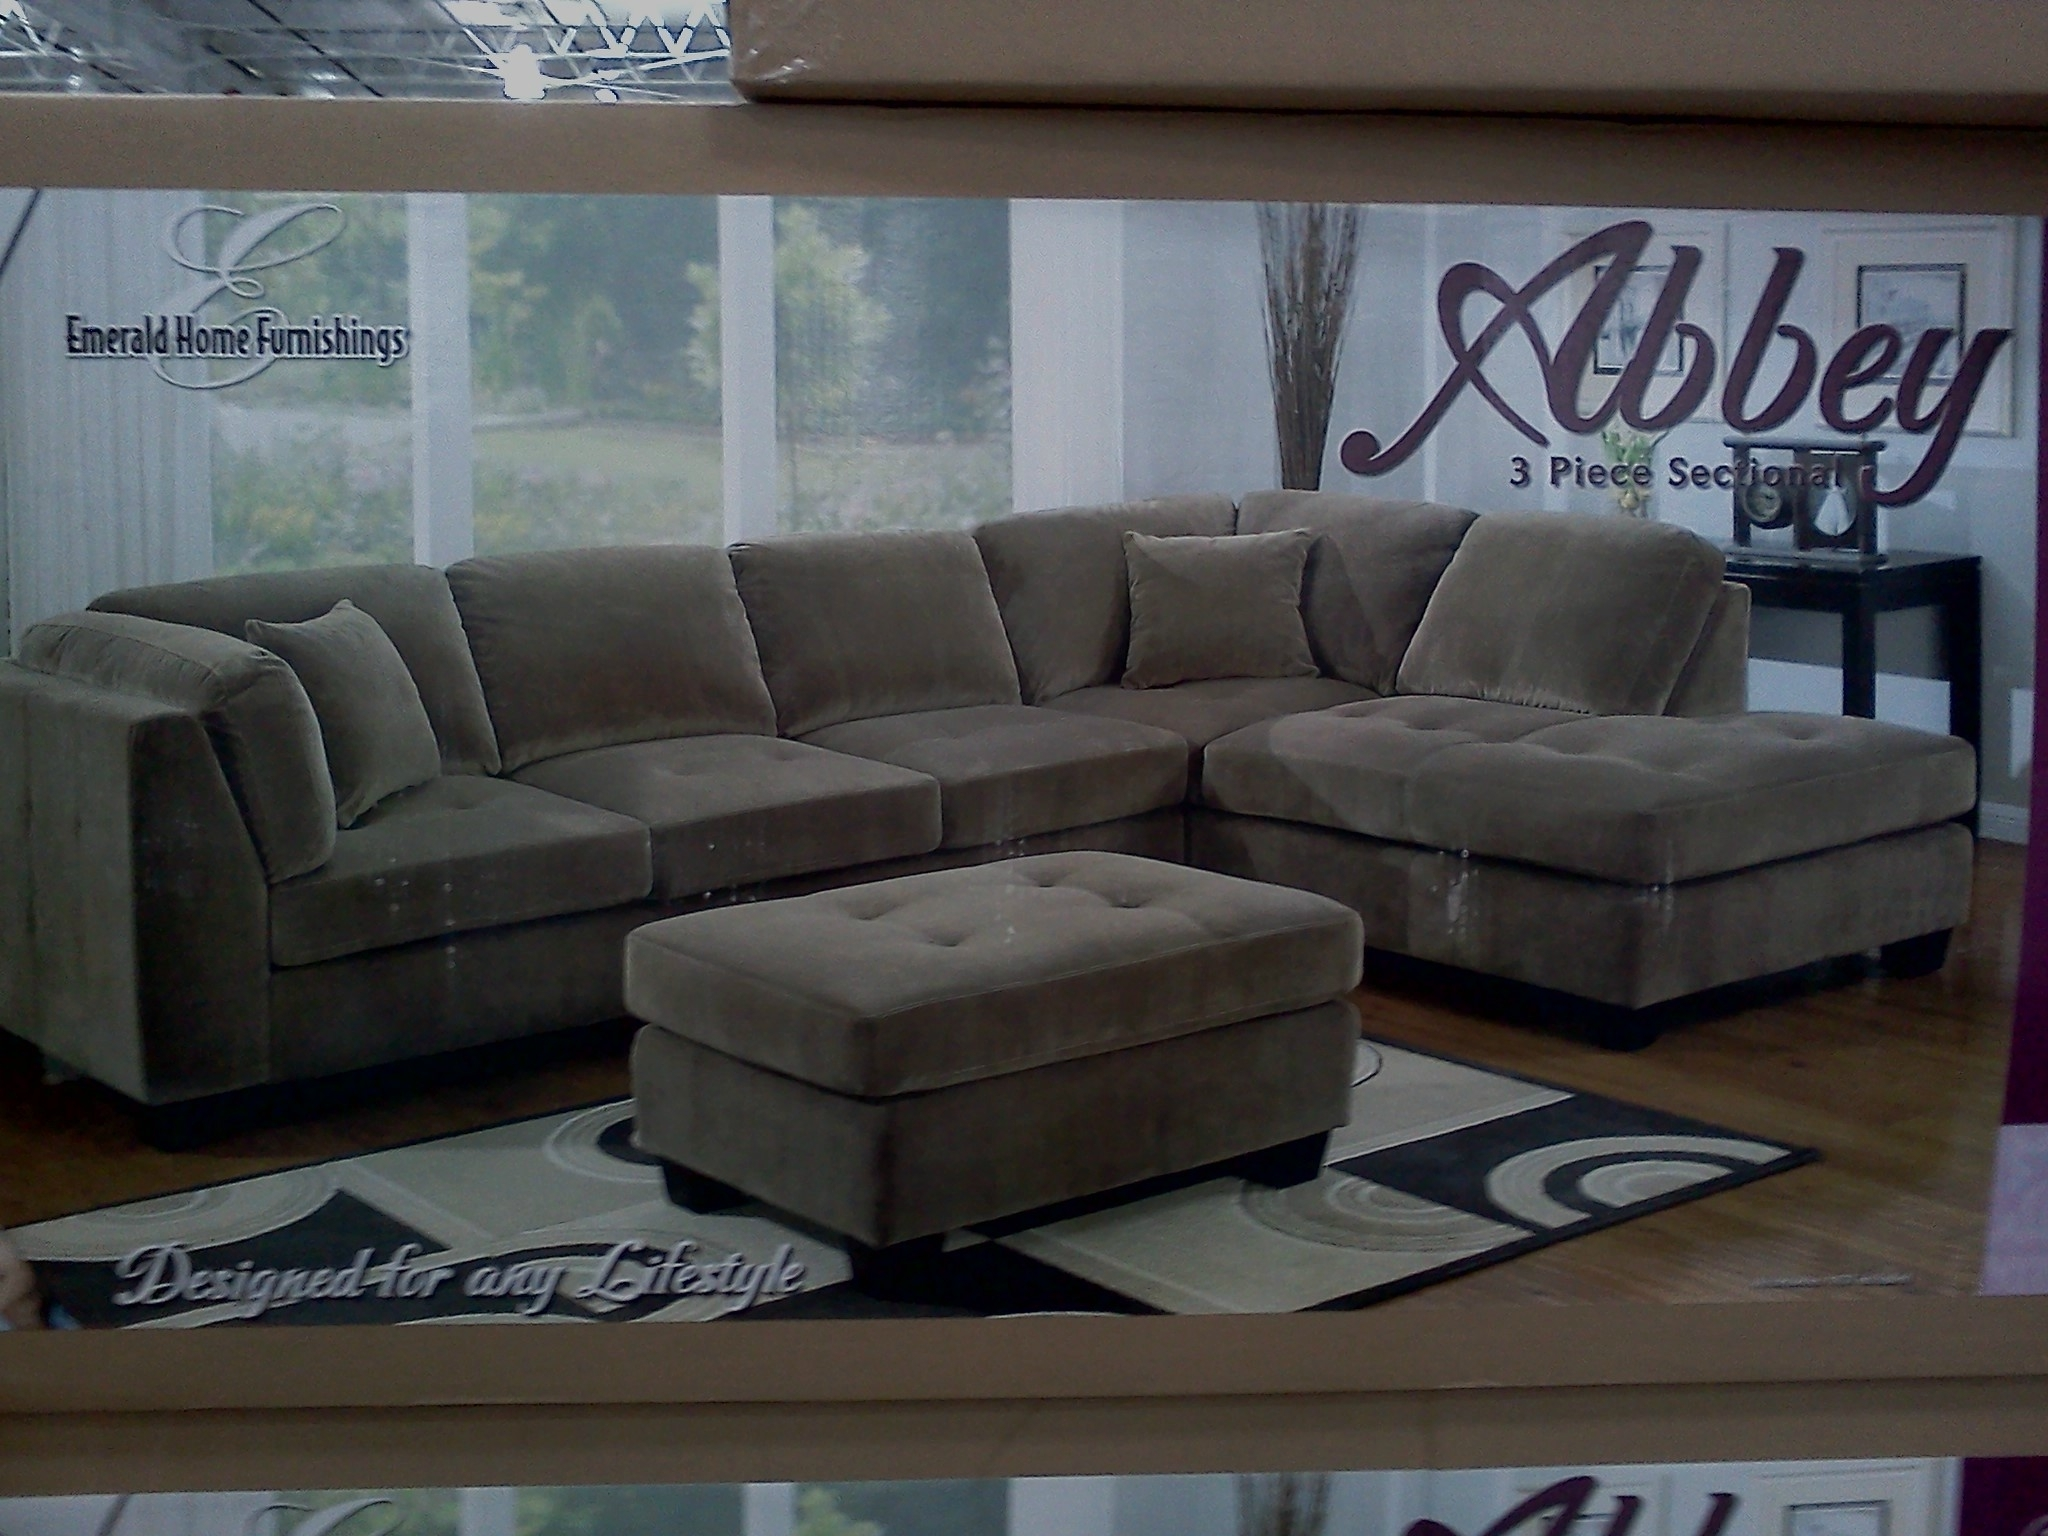 Amusing Sectional Sofas At Costco 11 About Remodel Sectional Sofas For Raleigh Nc Sectional Sofas (View 8 of 10)